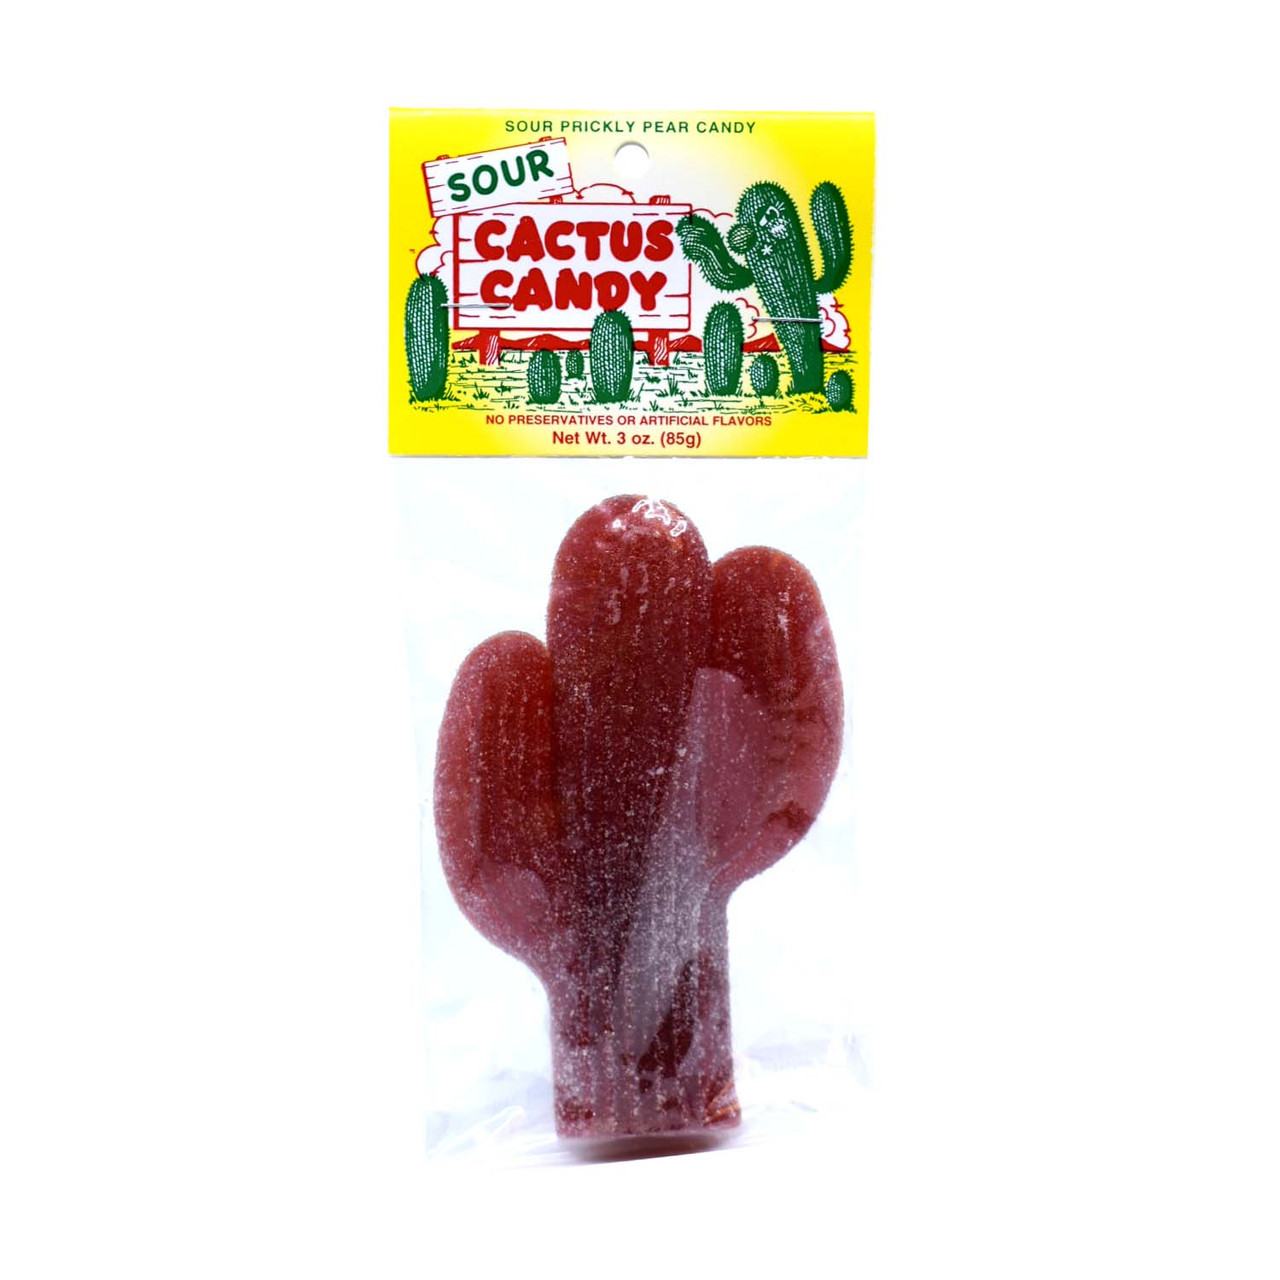 Sour Prickly Pear Cacti